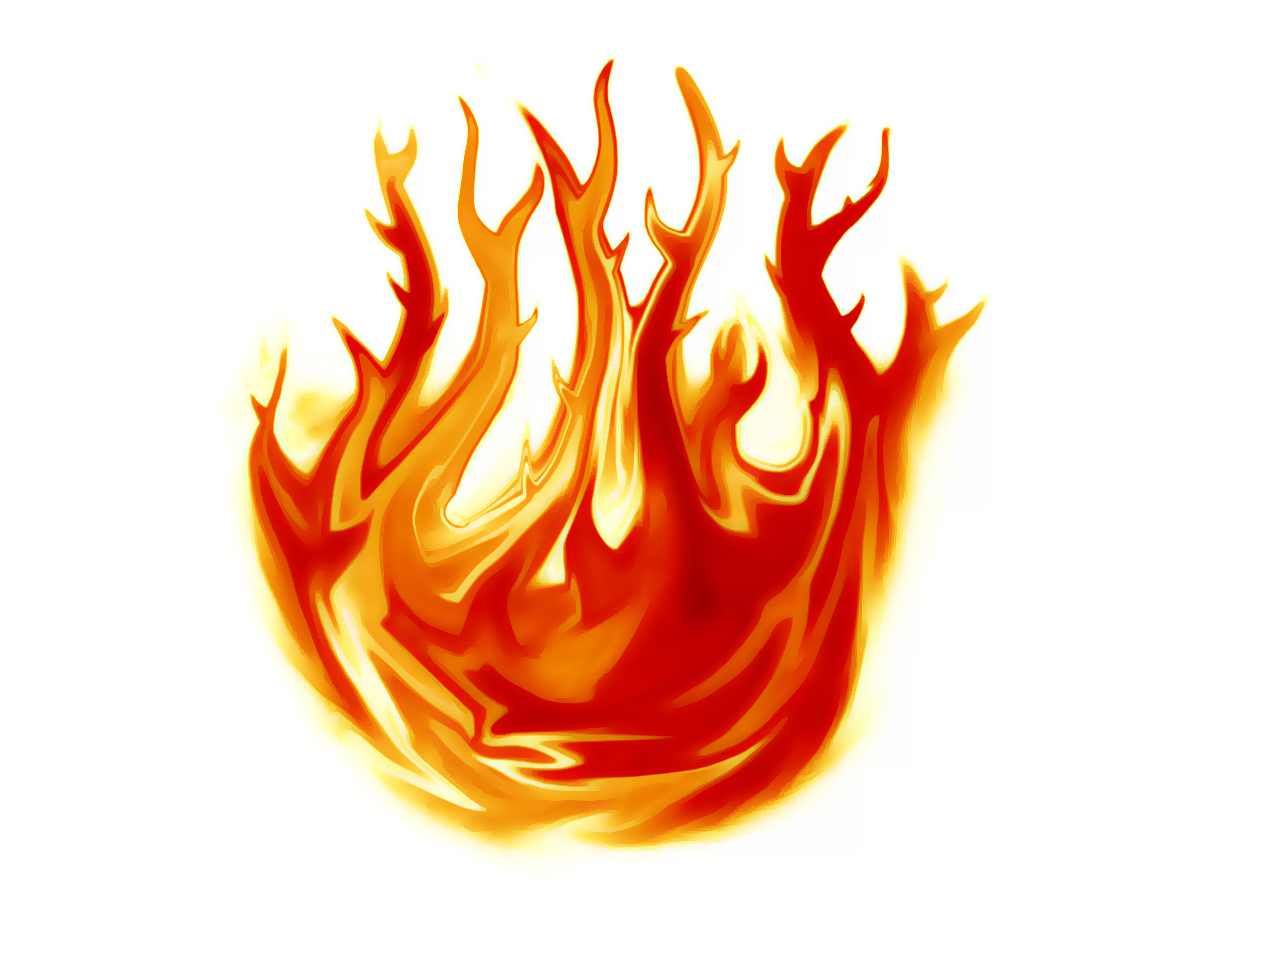 Cartoon Fire As A Picture For Clipart Free Image Flame can give life, and can kill. cartoon fire as a picture for clipart free image